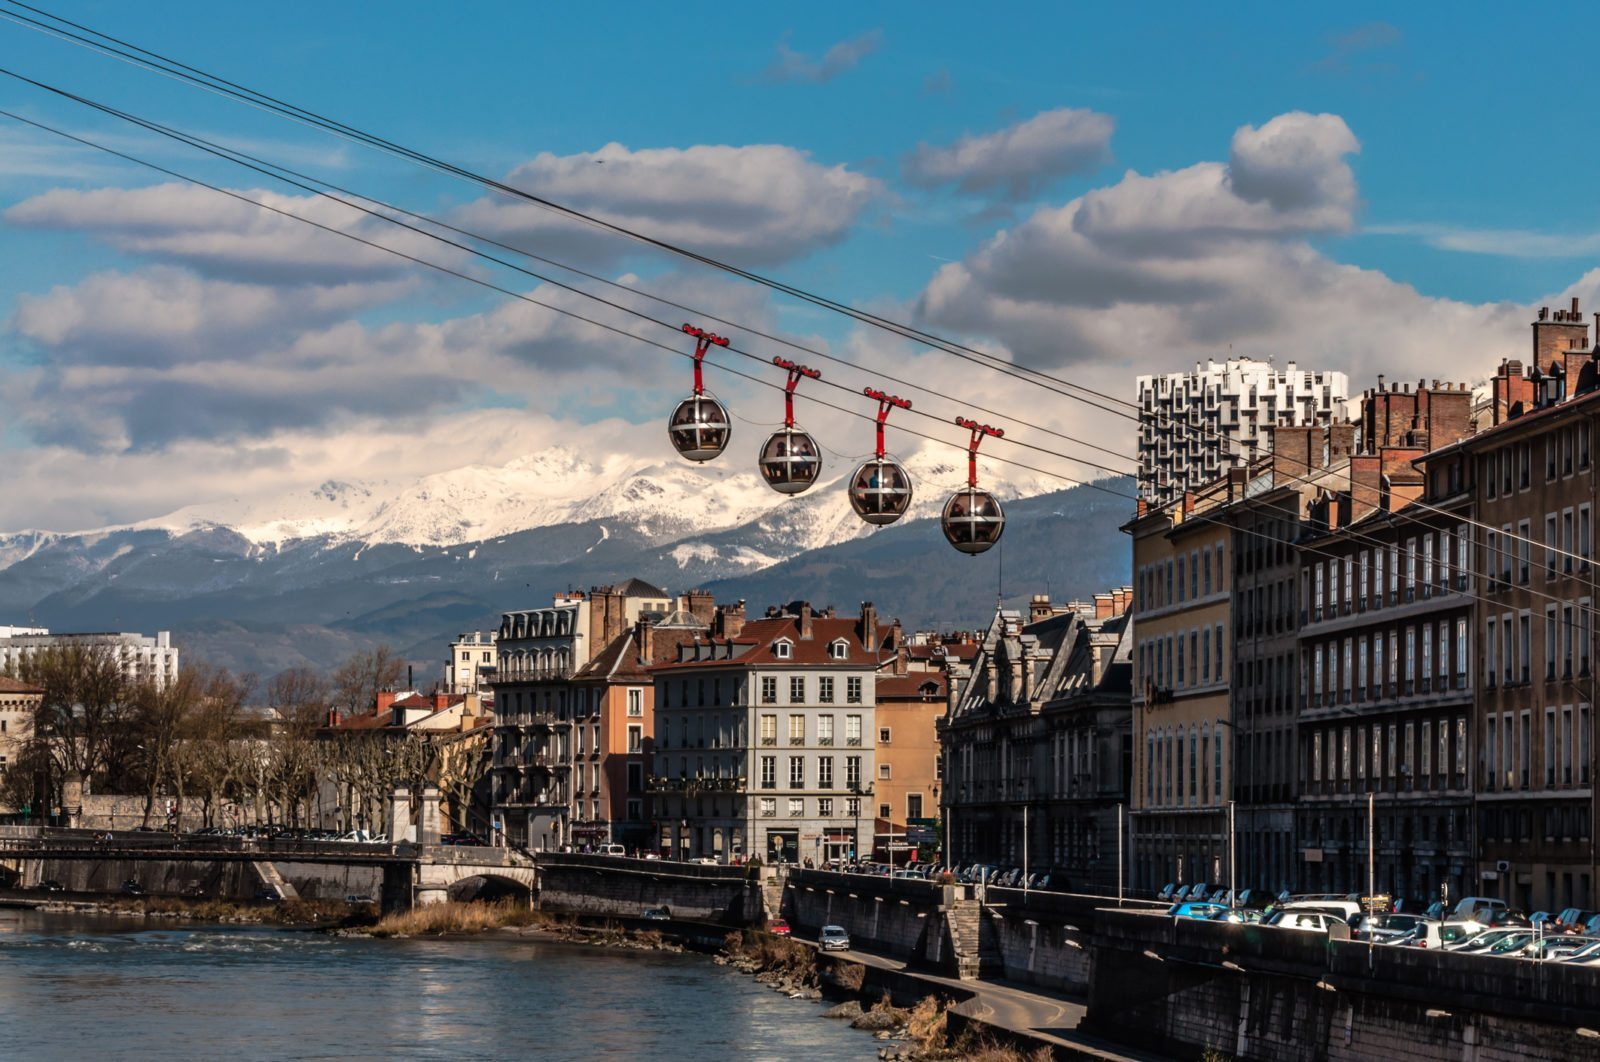 Grenoble Airport Transfers. Airport transfers to ski areas such as Espace Killy and the Three Valleys